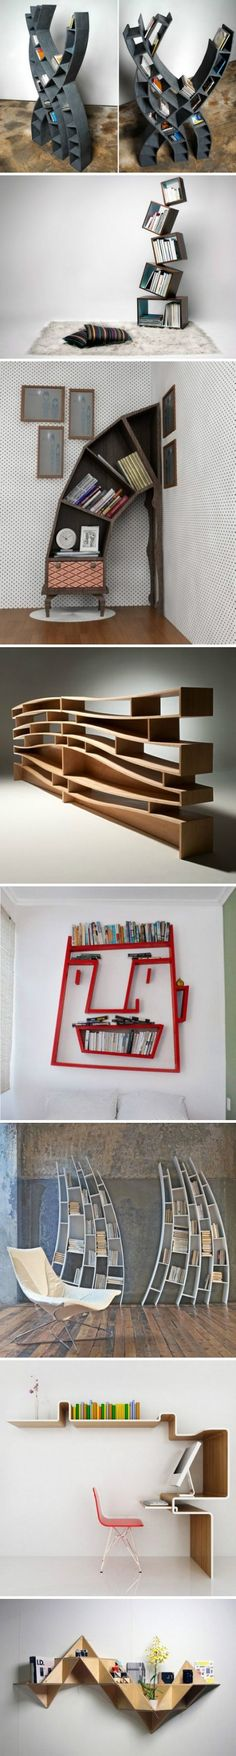 Unique DIY Book Shelves- not sure if I would ever really want any of these in my home, but they're intriguing and inspiring nonetheless. :)